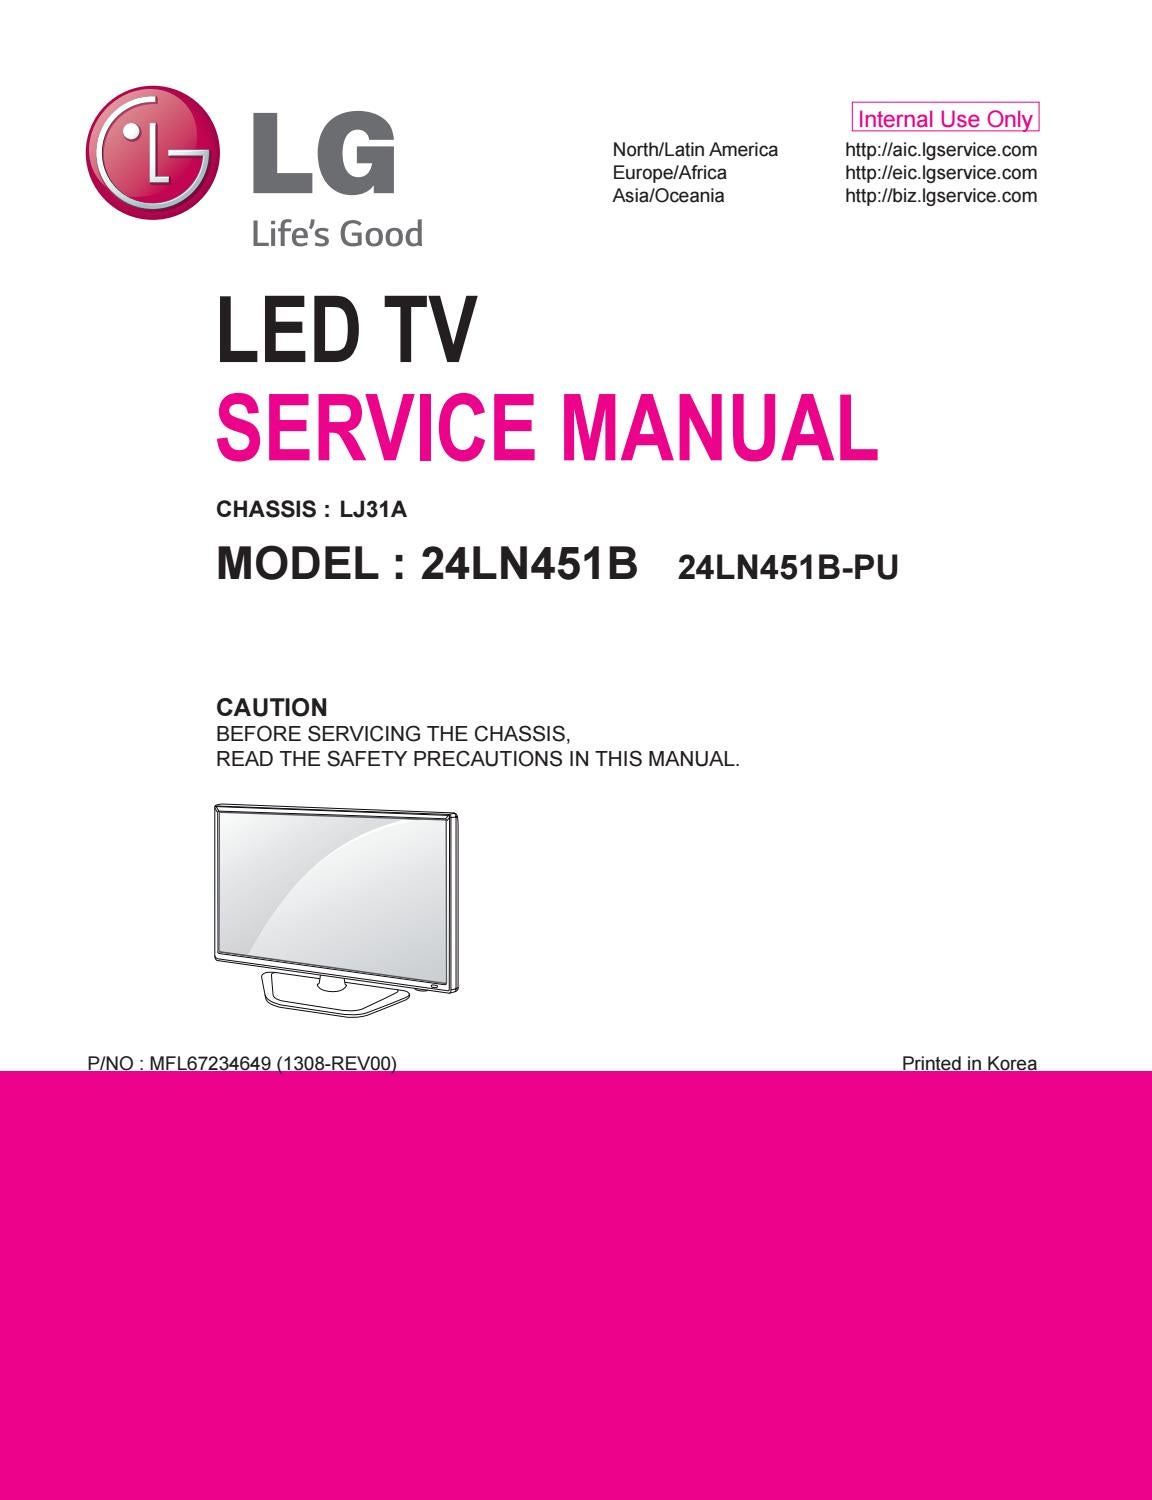 manual de servi o tv lg 24ln451b chassis lj31a by portal. Black Bedroom Furniture Sets. Home Design Ideas